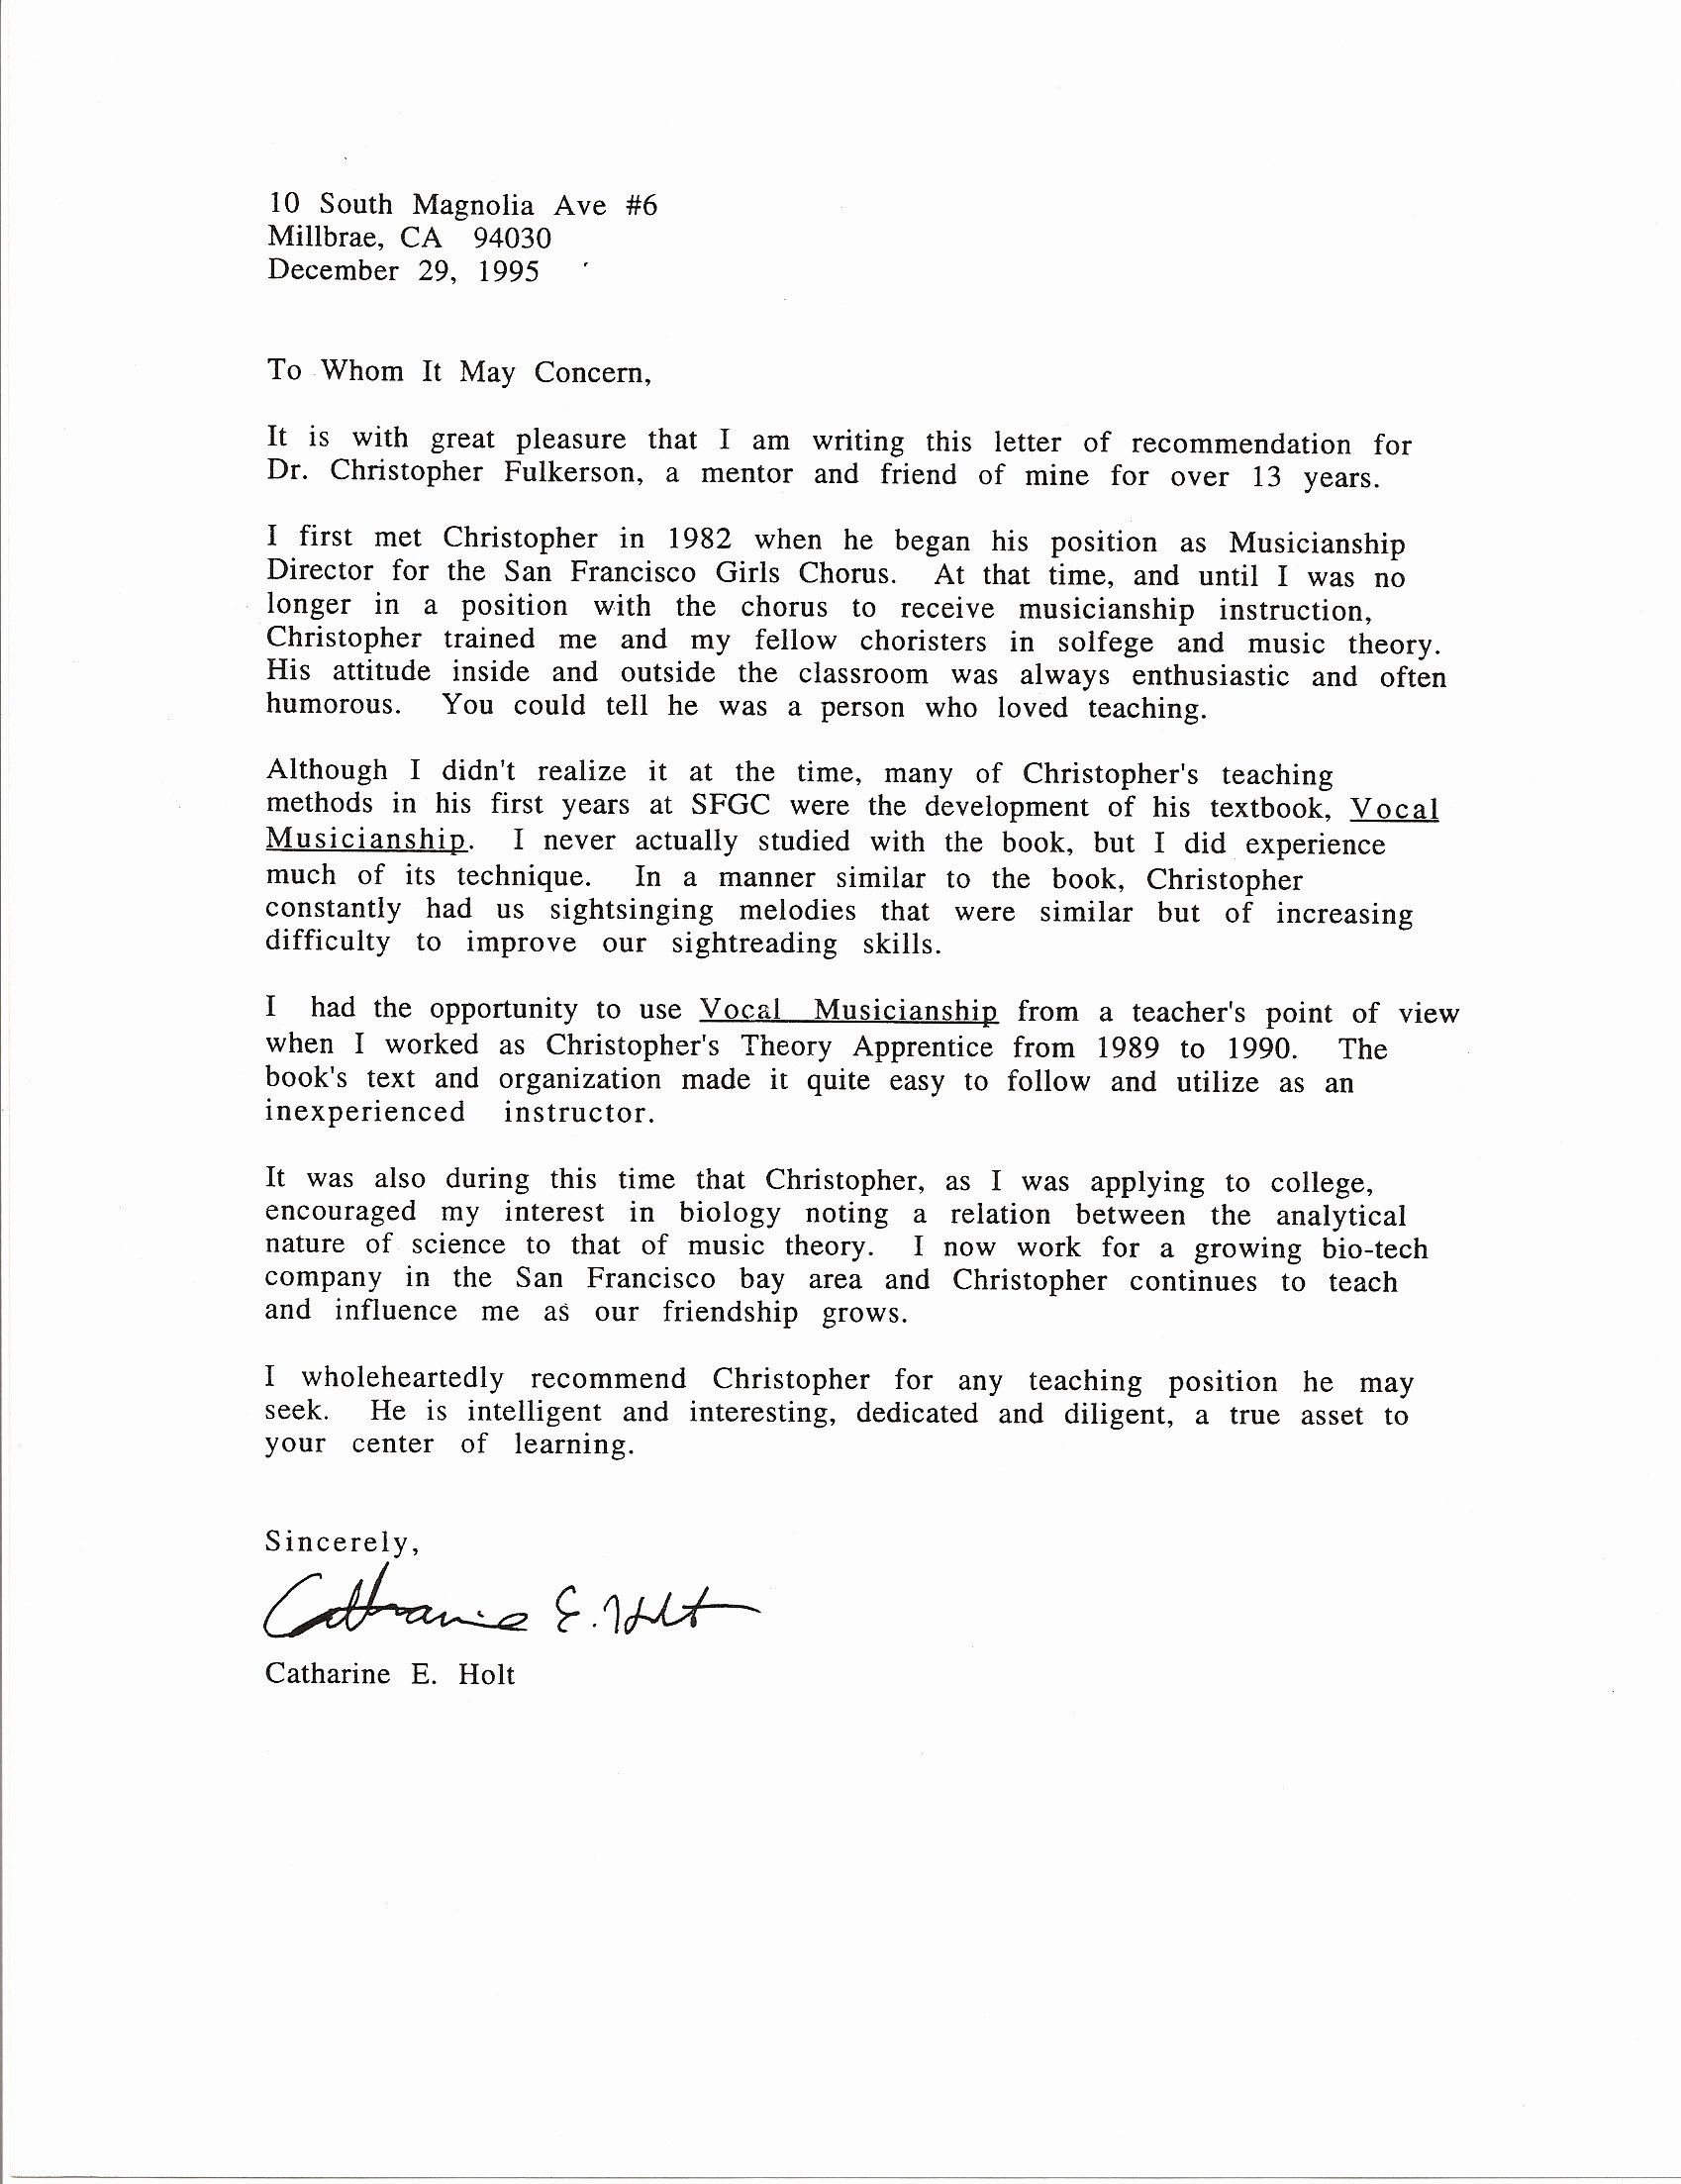 Recommendation Letter for Teaching assistant Beautiful Catharine E Holt Letter